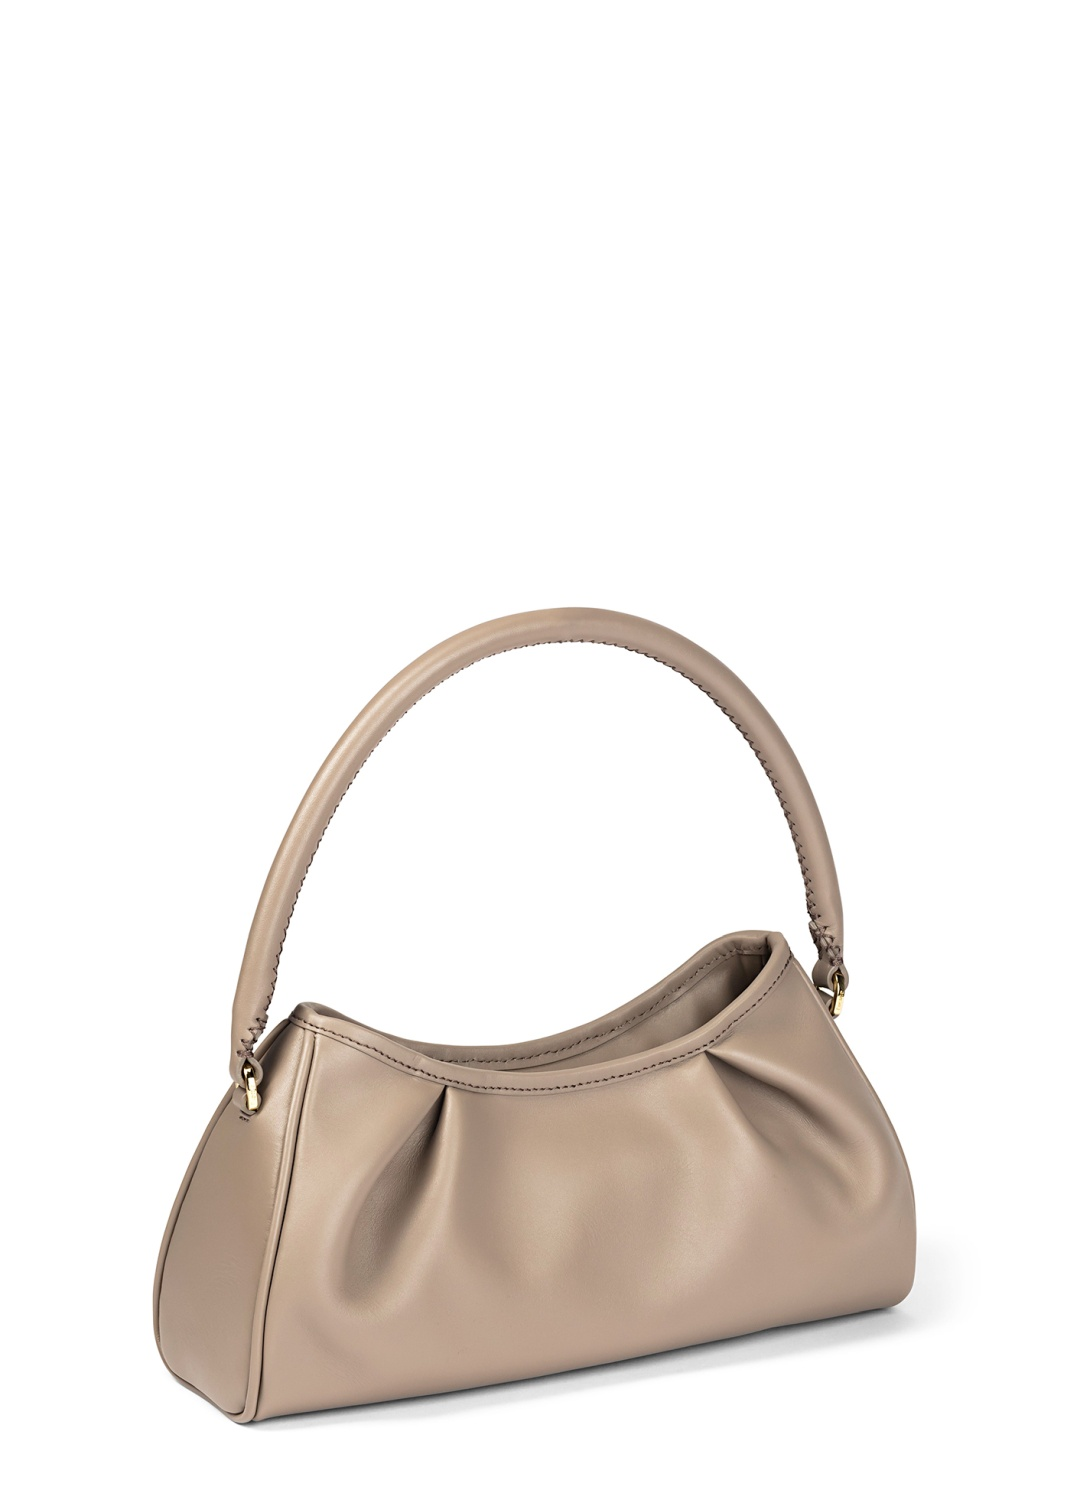 Dimple Leather Baguette Bag image number 1